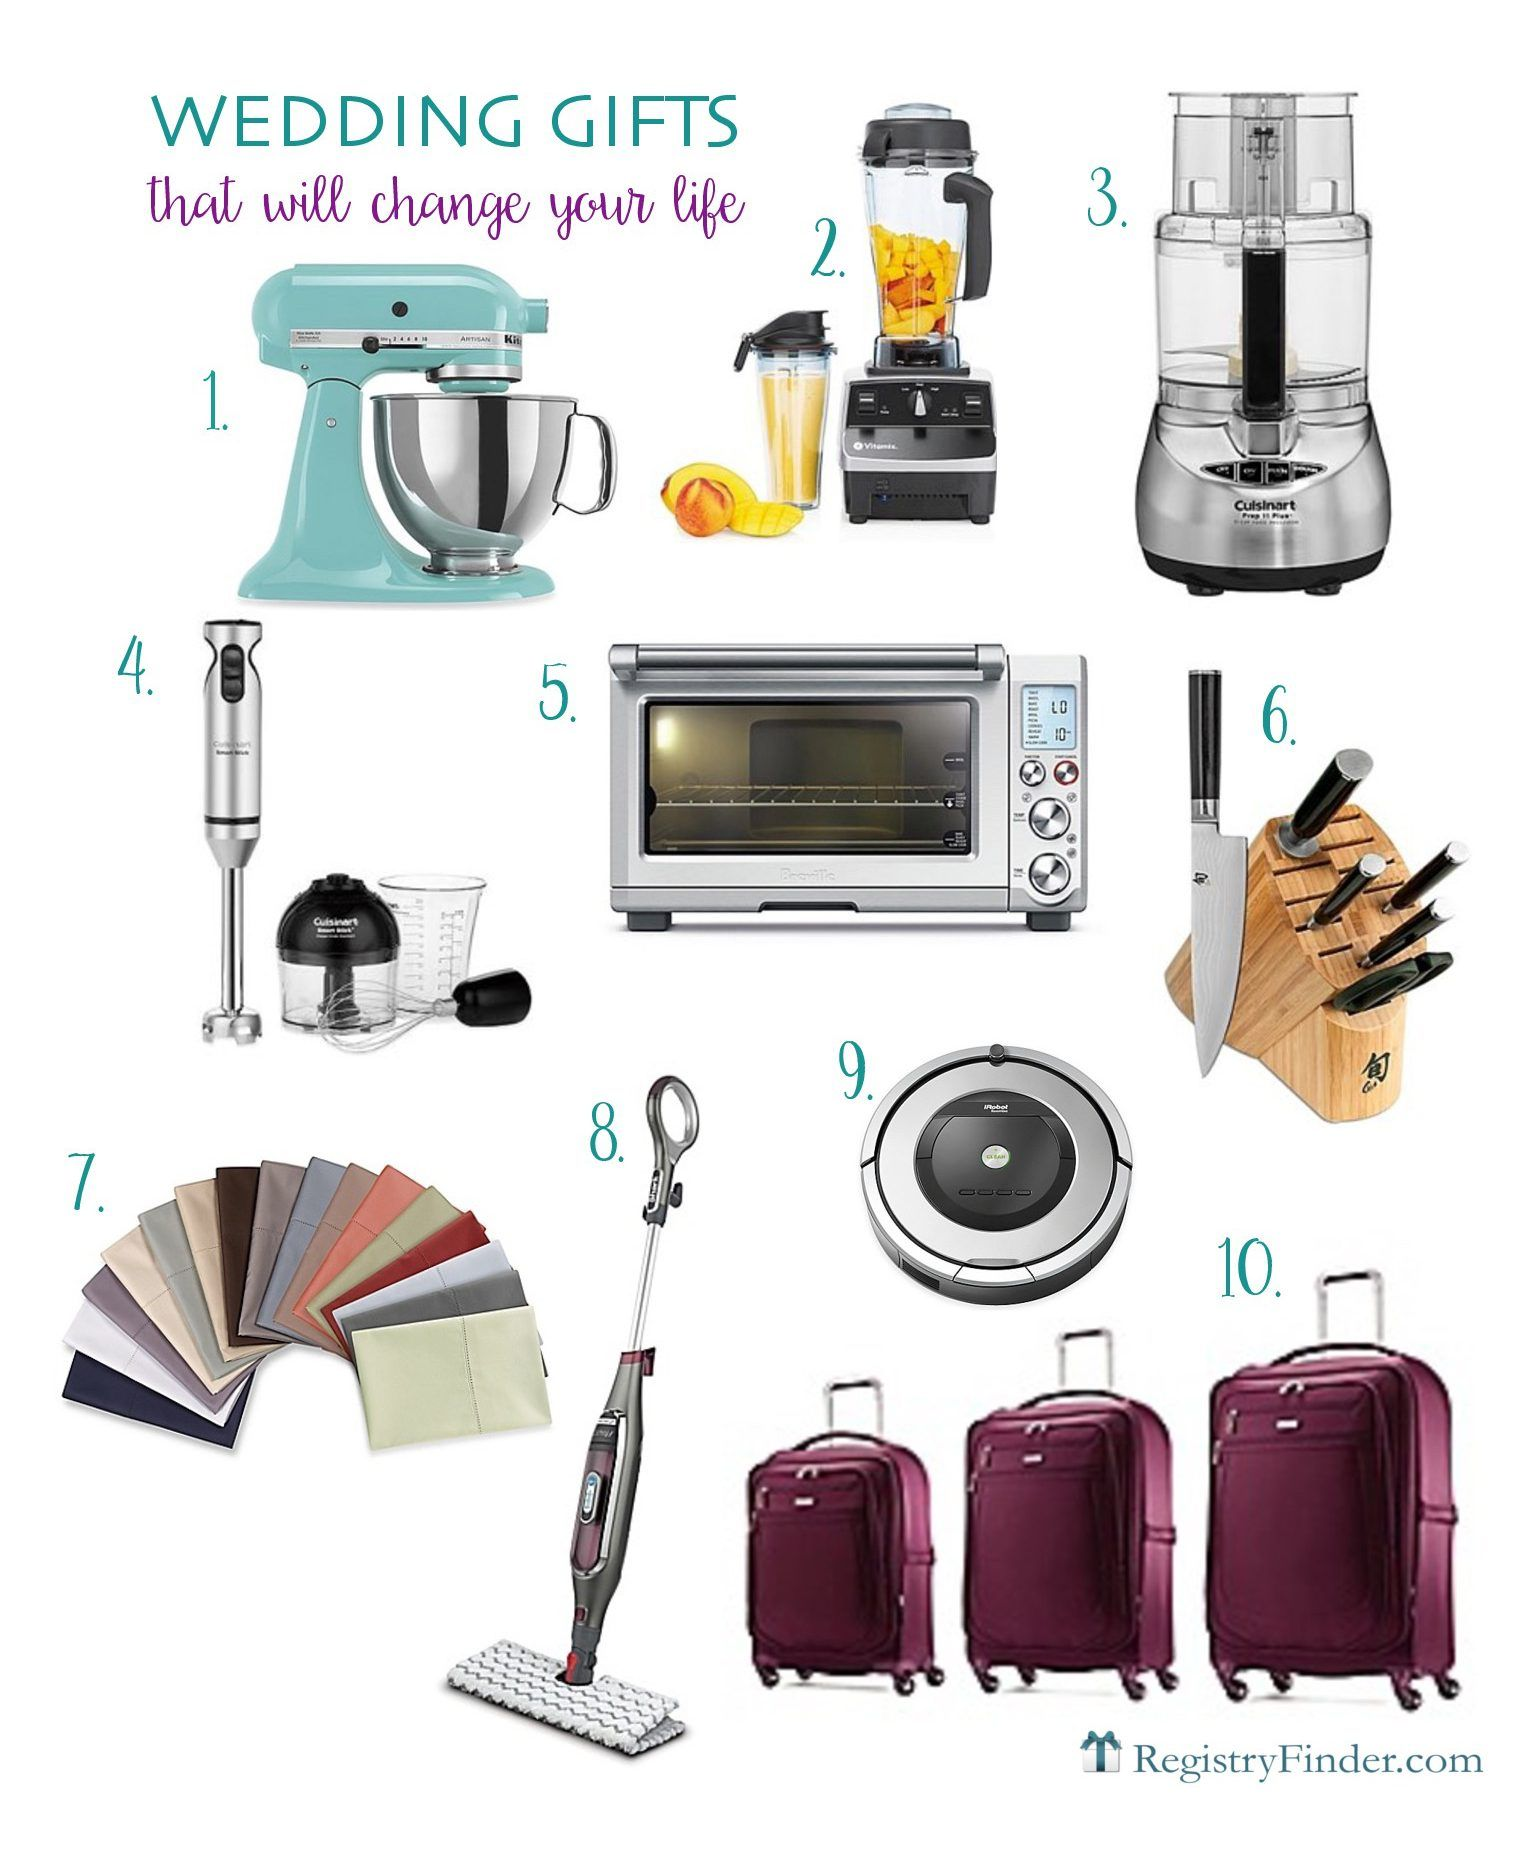 There Are Some Wedding Registry Items That Once You Receive Will Wonder How